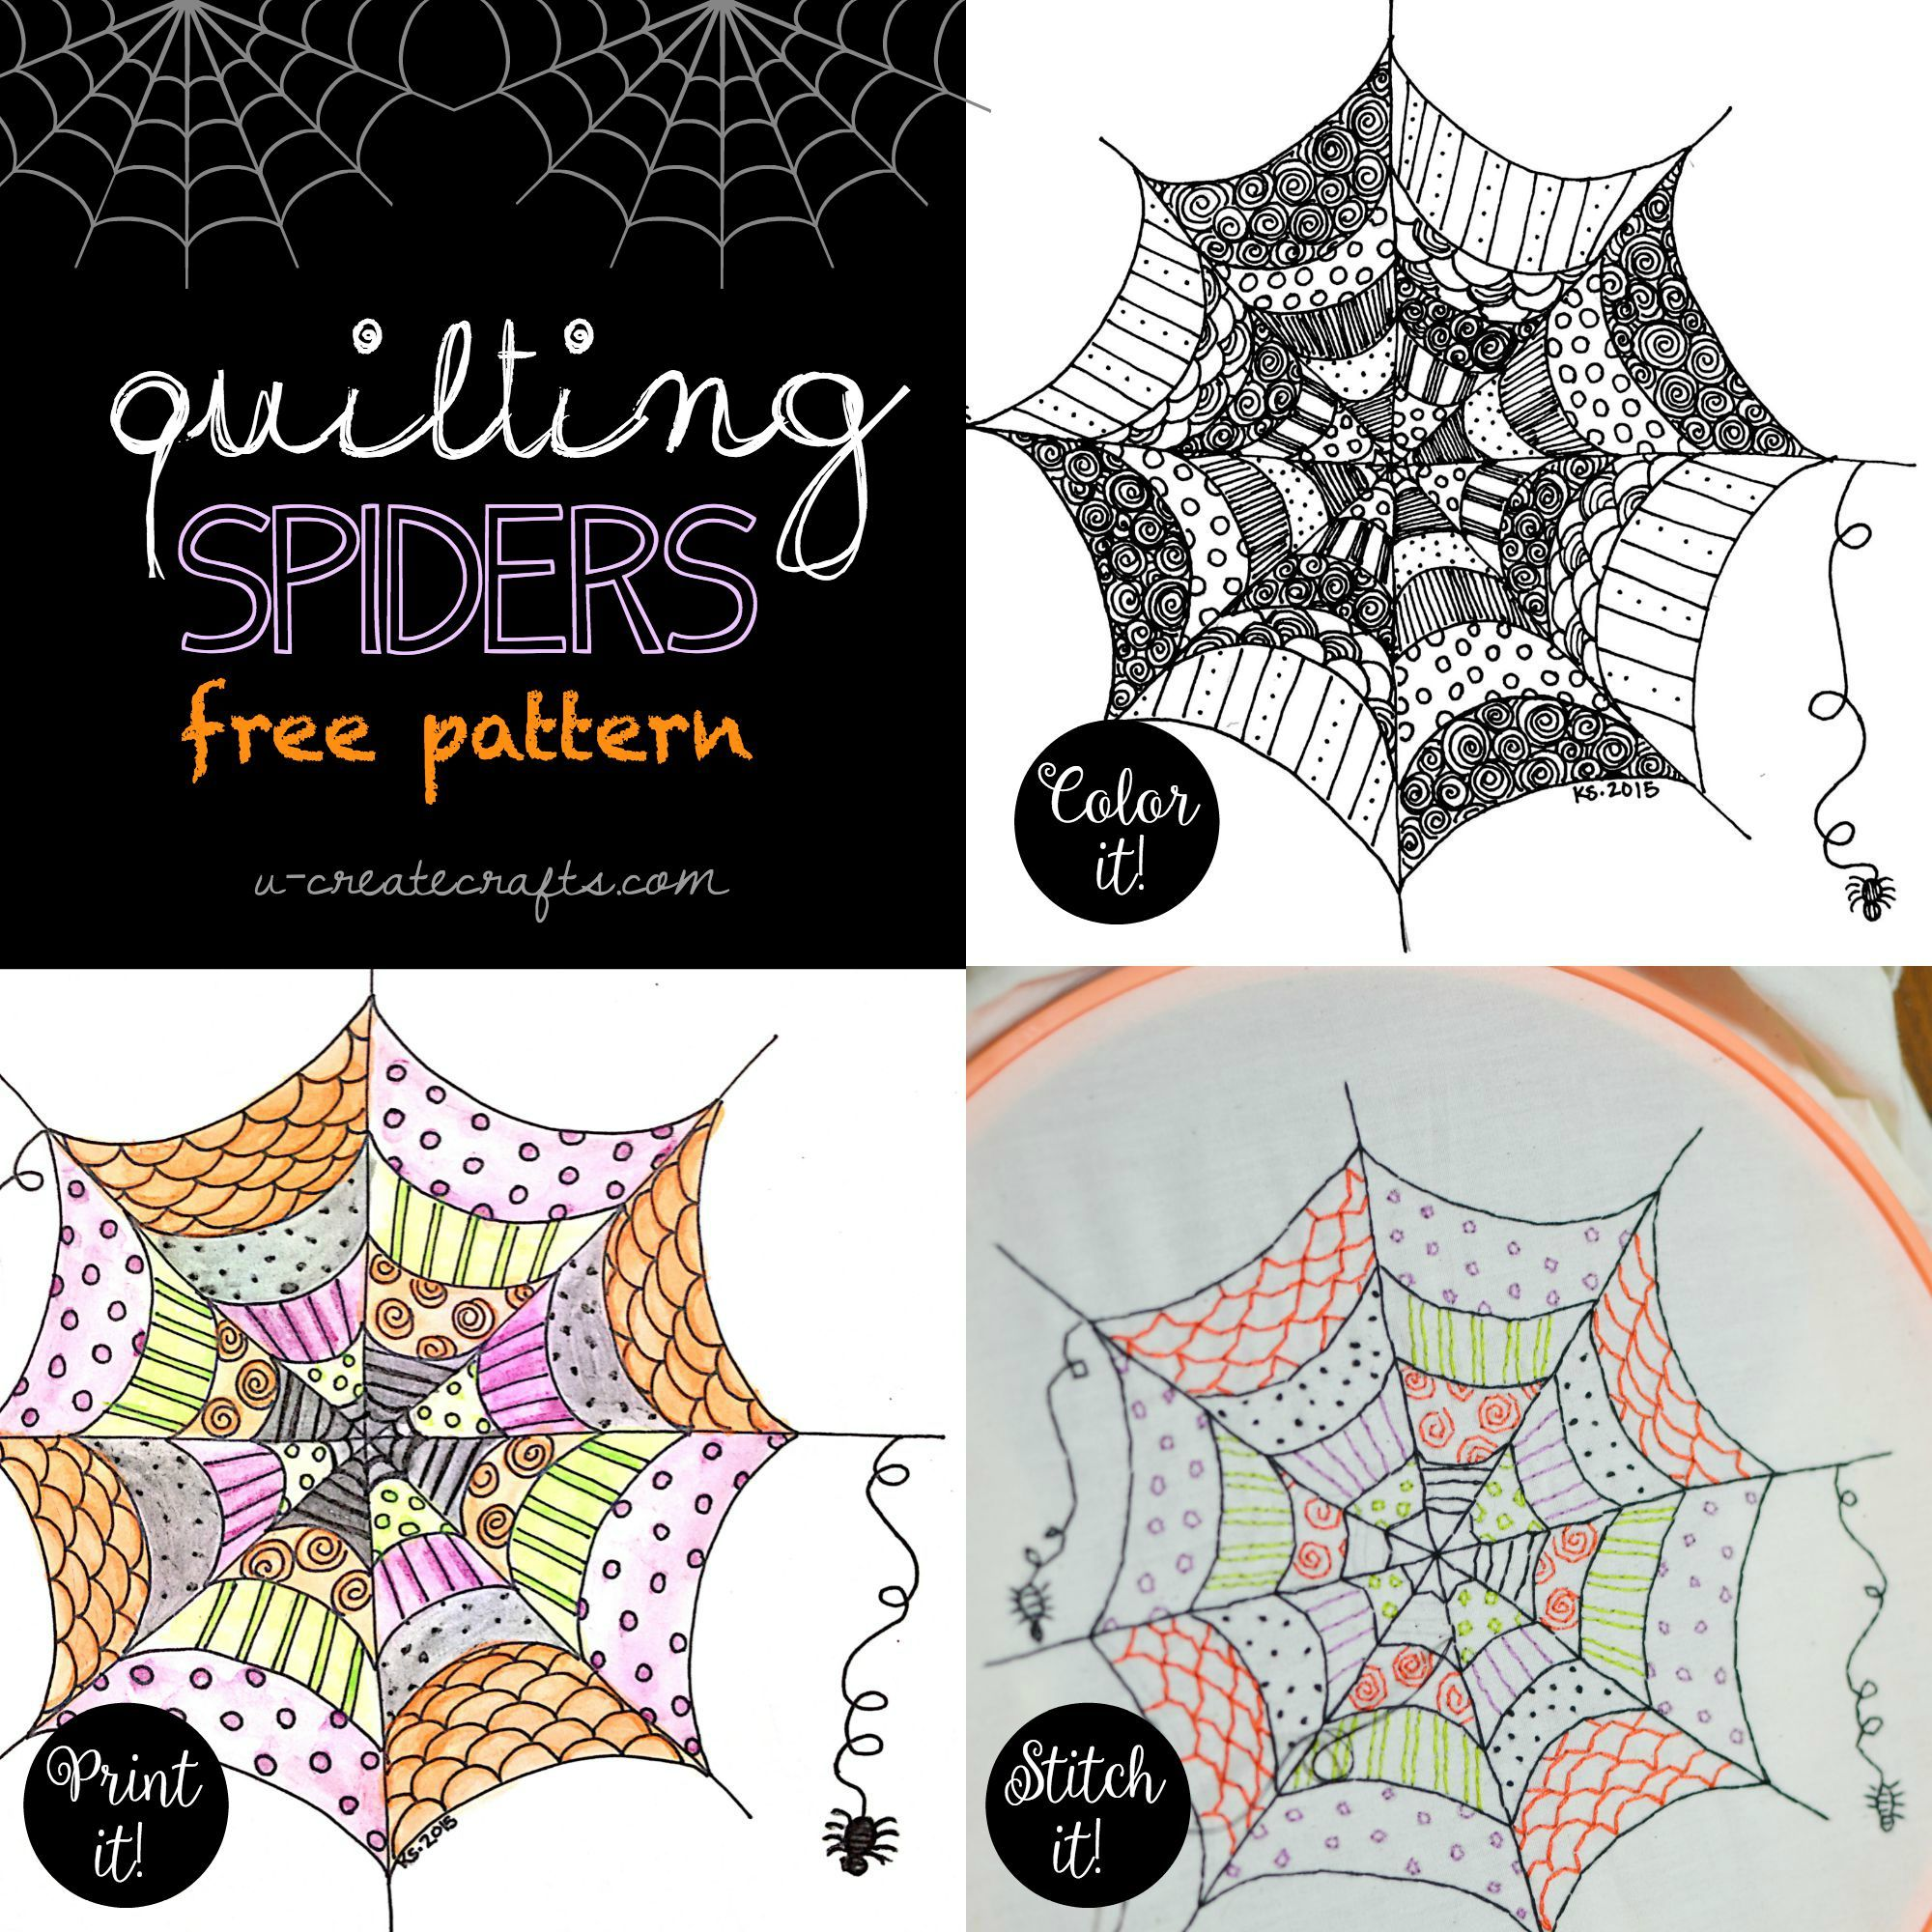 Quilting Spiders\